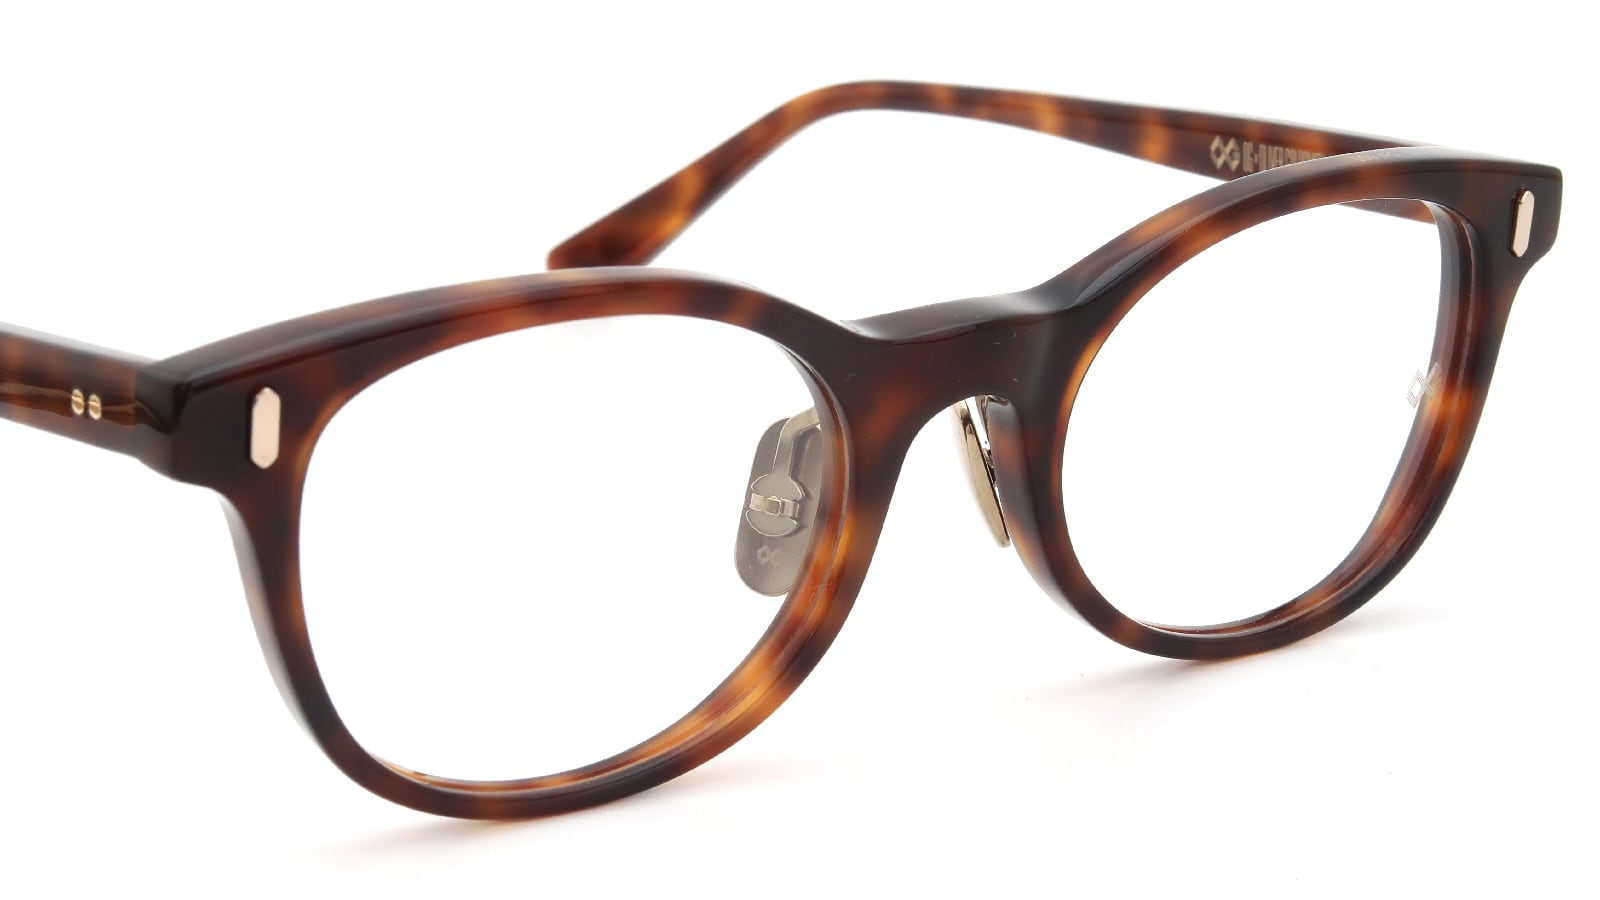 OG × OLIVER GOLDSMITH PUT IN two 49 6